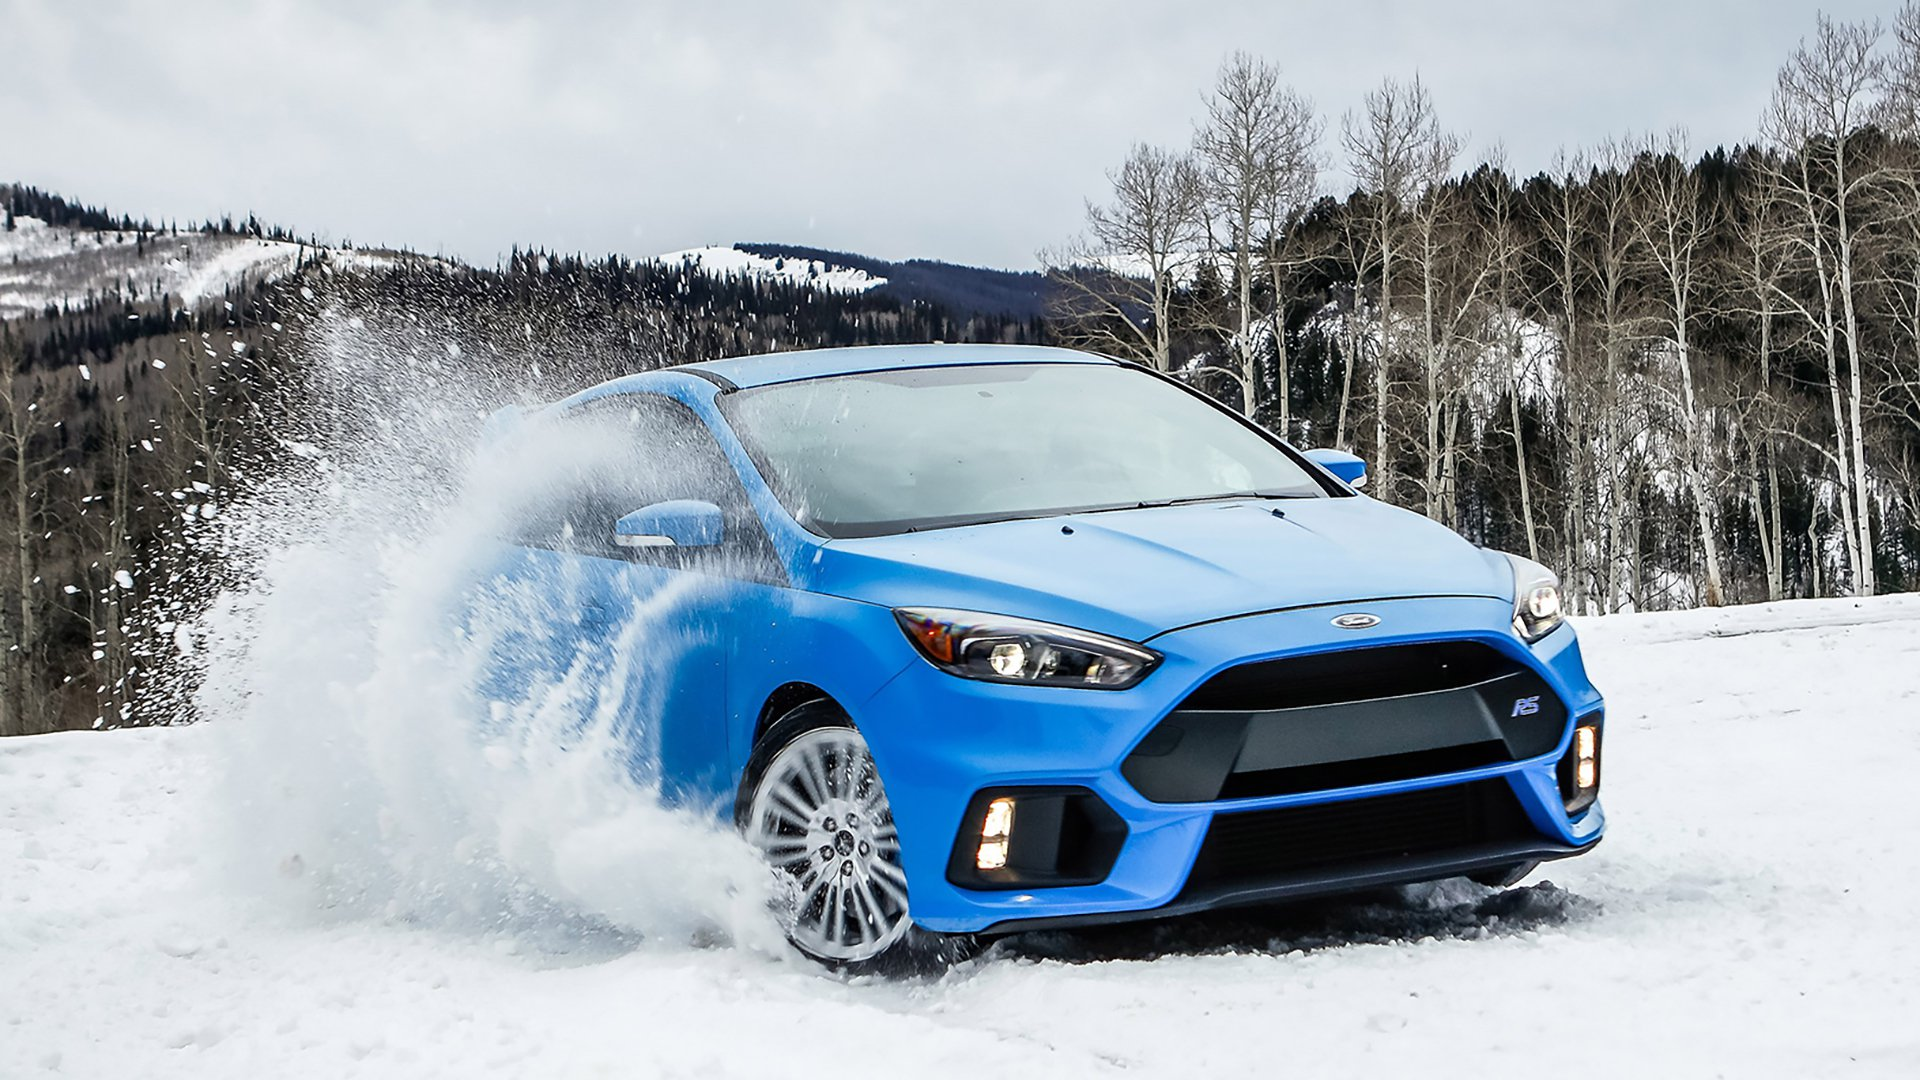 Ford Focus Rs Demand Stays High Months After Release The Drive